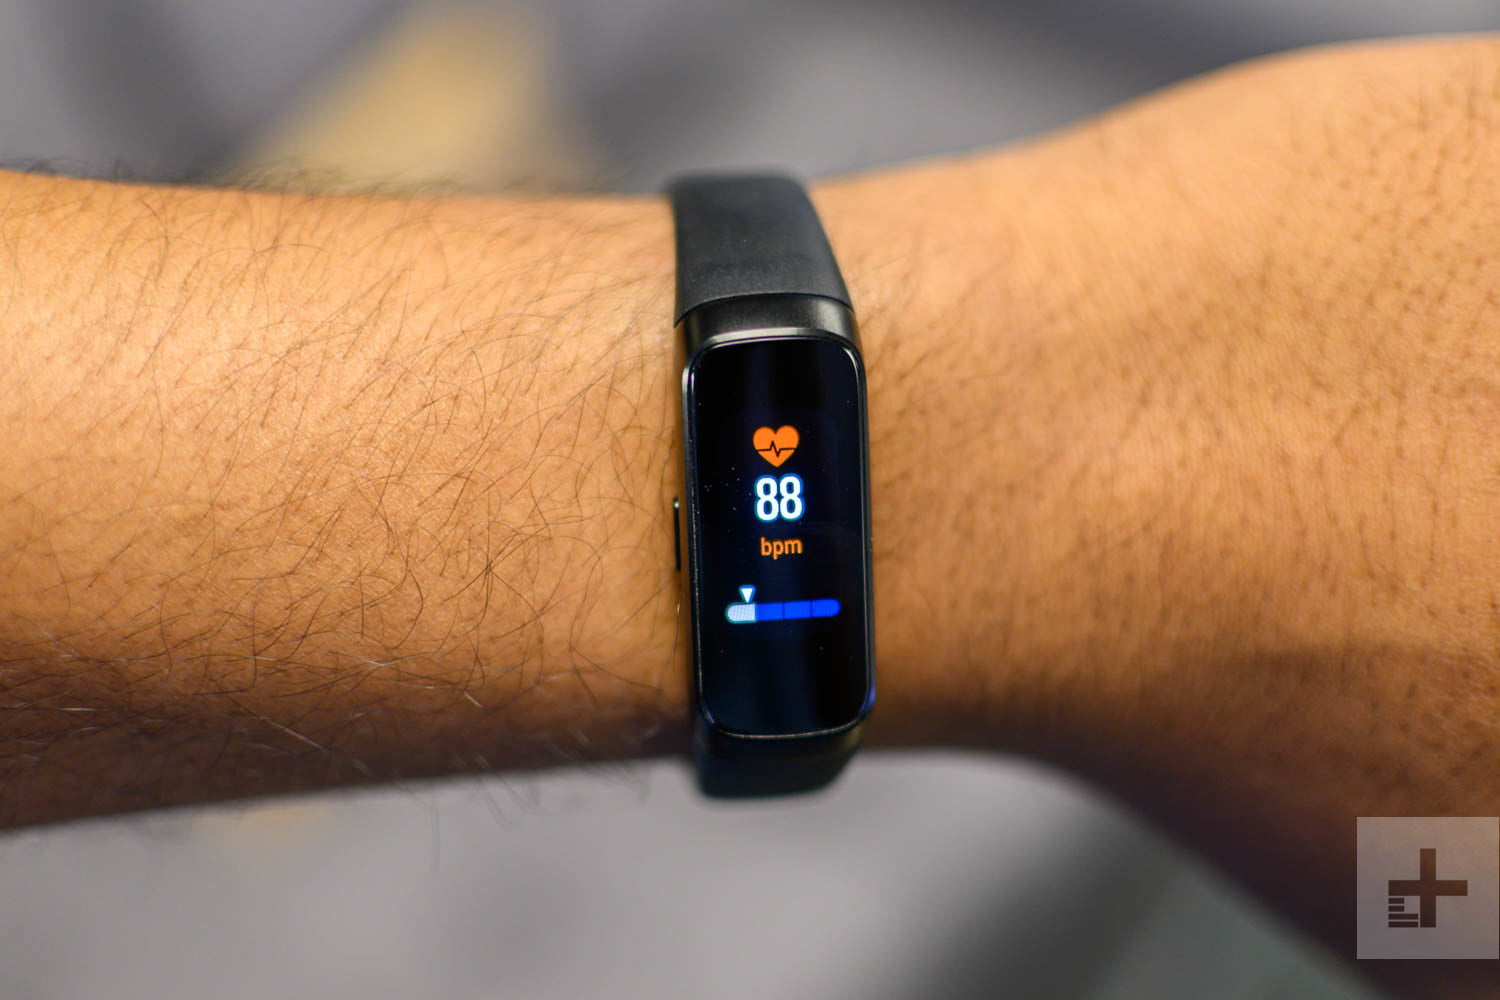 Samsung Galaxy Fit Review: A $99 Fitness Tracker | Digital ...